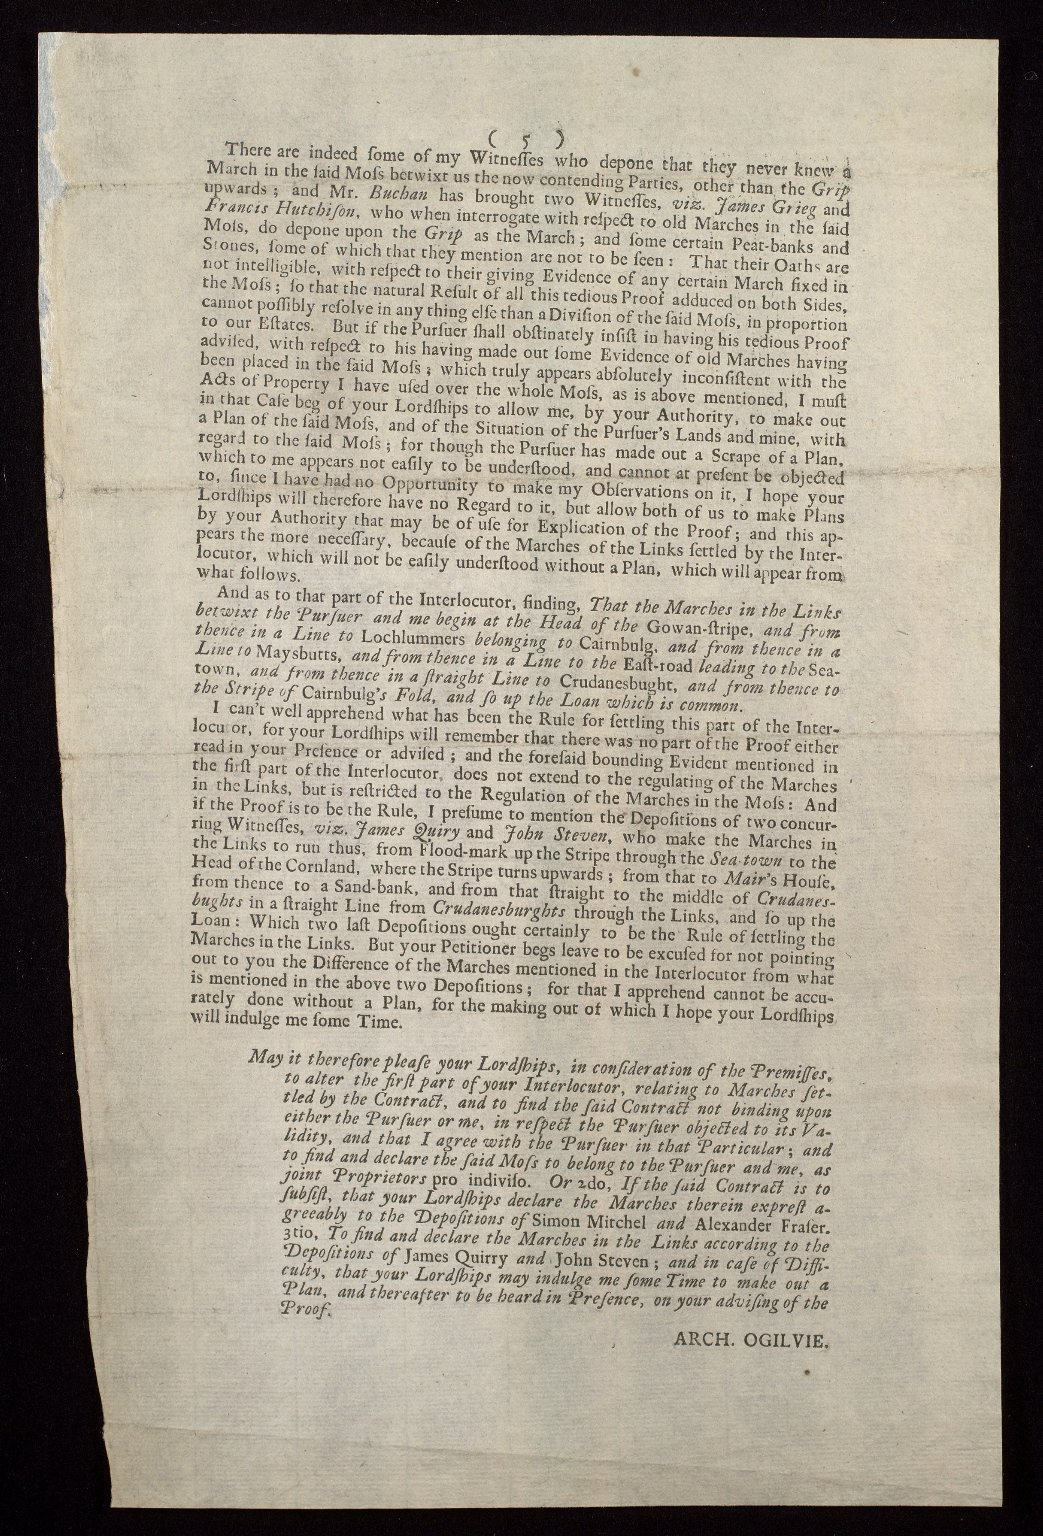 The Petition of Charles Fraser of Inveralochy [3 of 3]